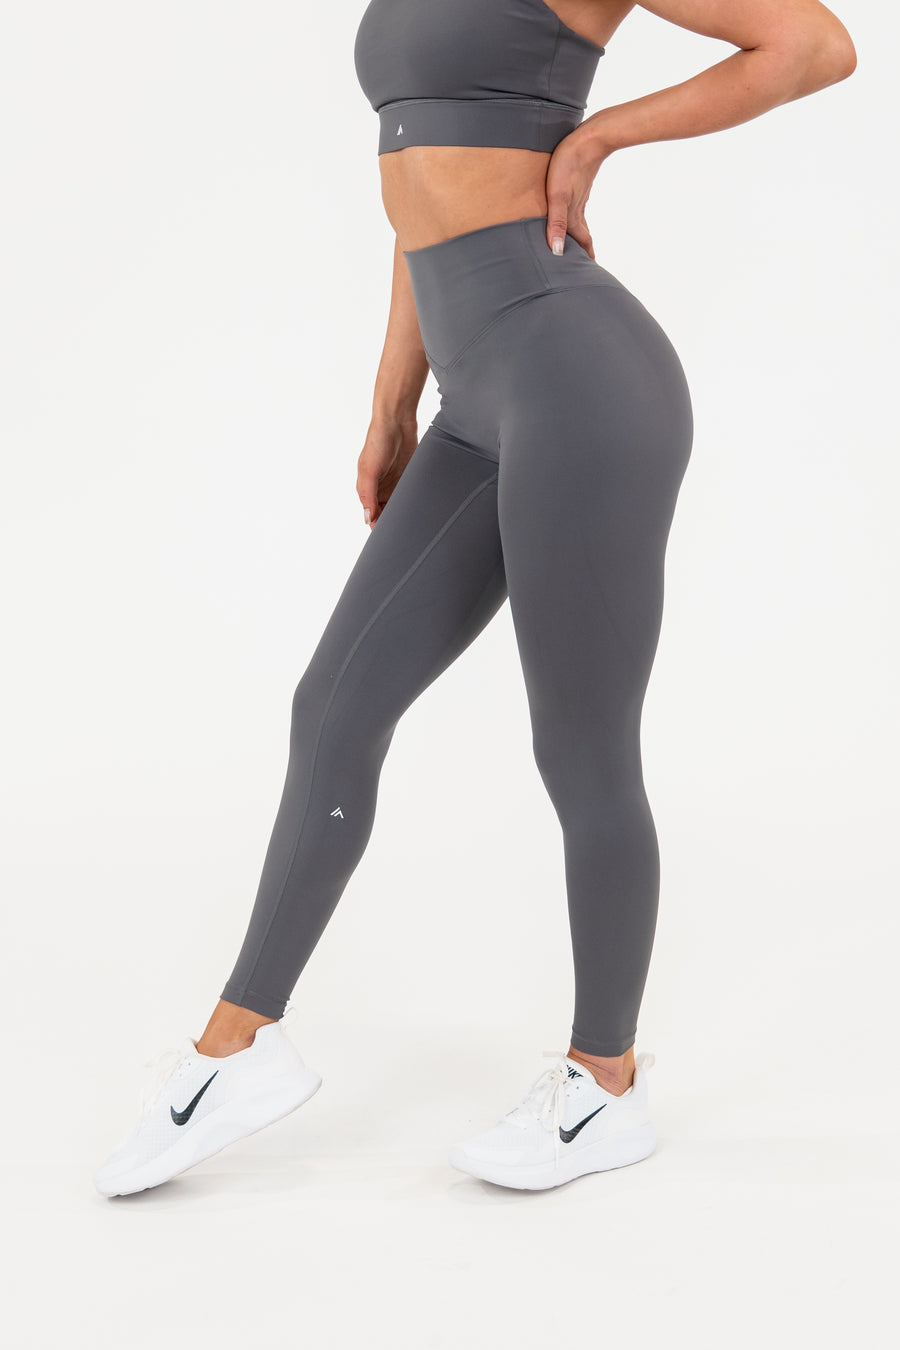 THEA LEGGINGS - ASH